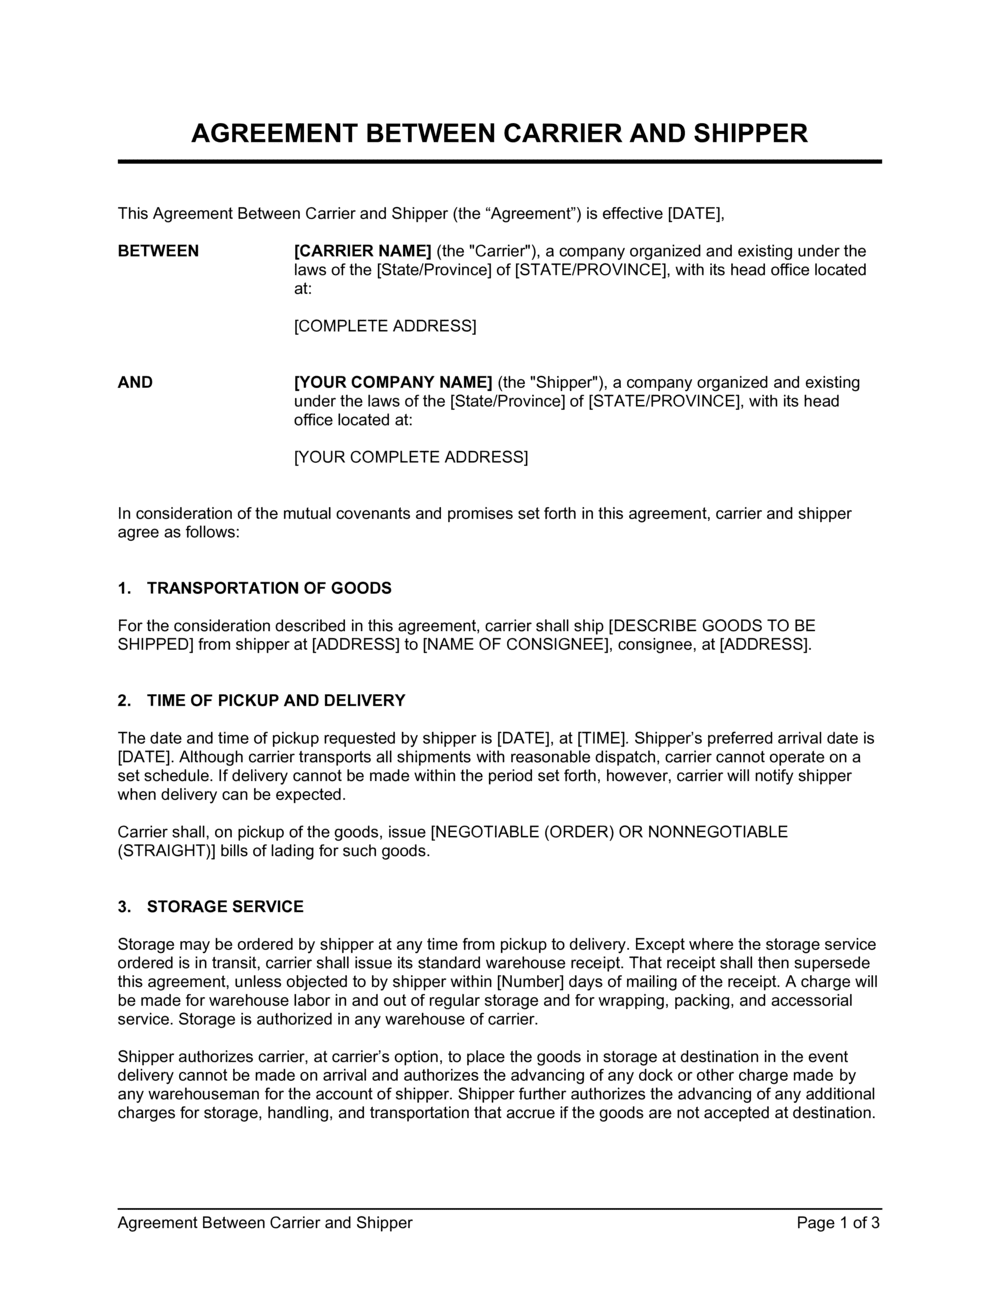 Business-in-a-Box's Agreement Between Carrier and Shipper Template